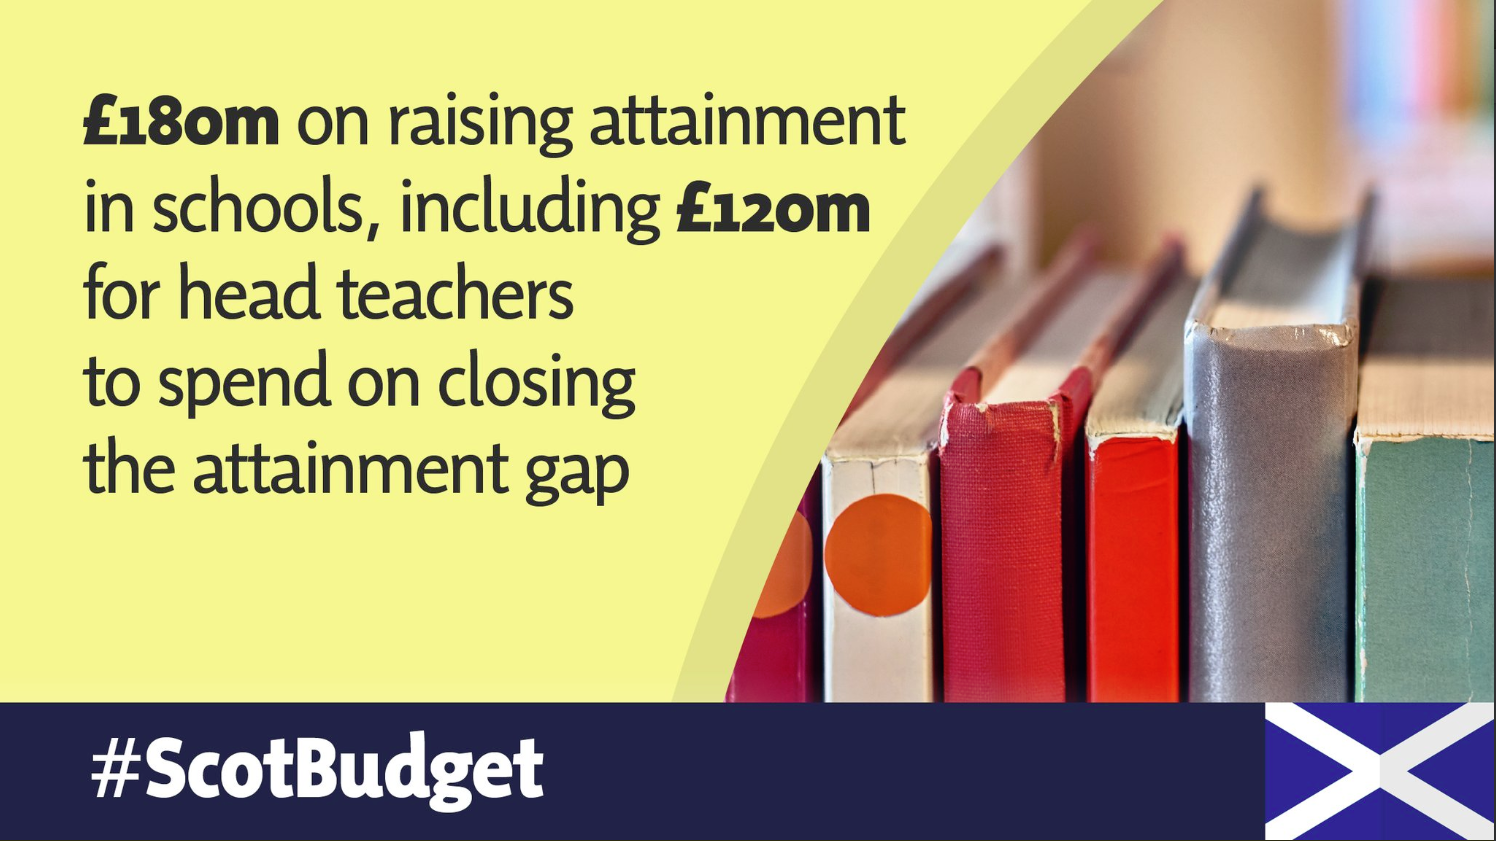 budget graphics - attainment gap